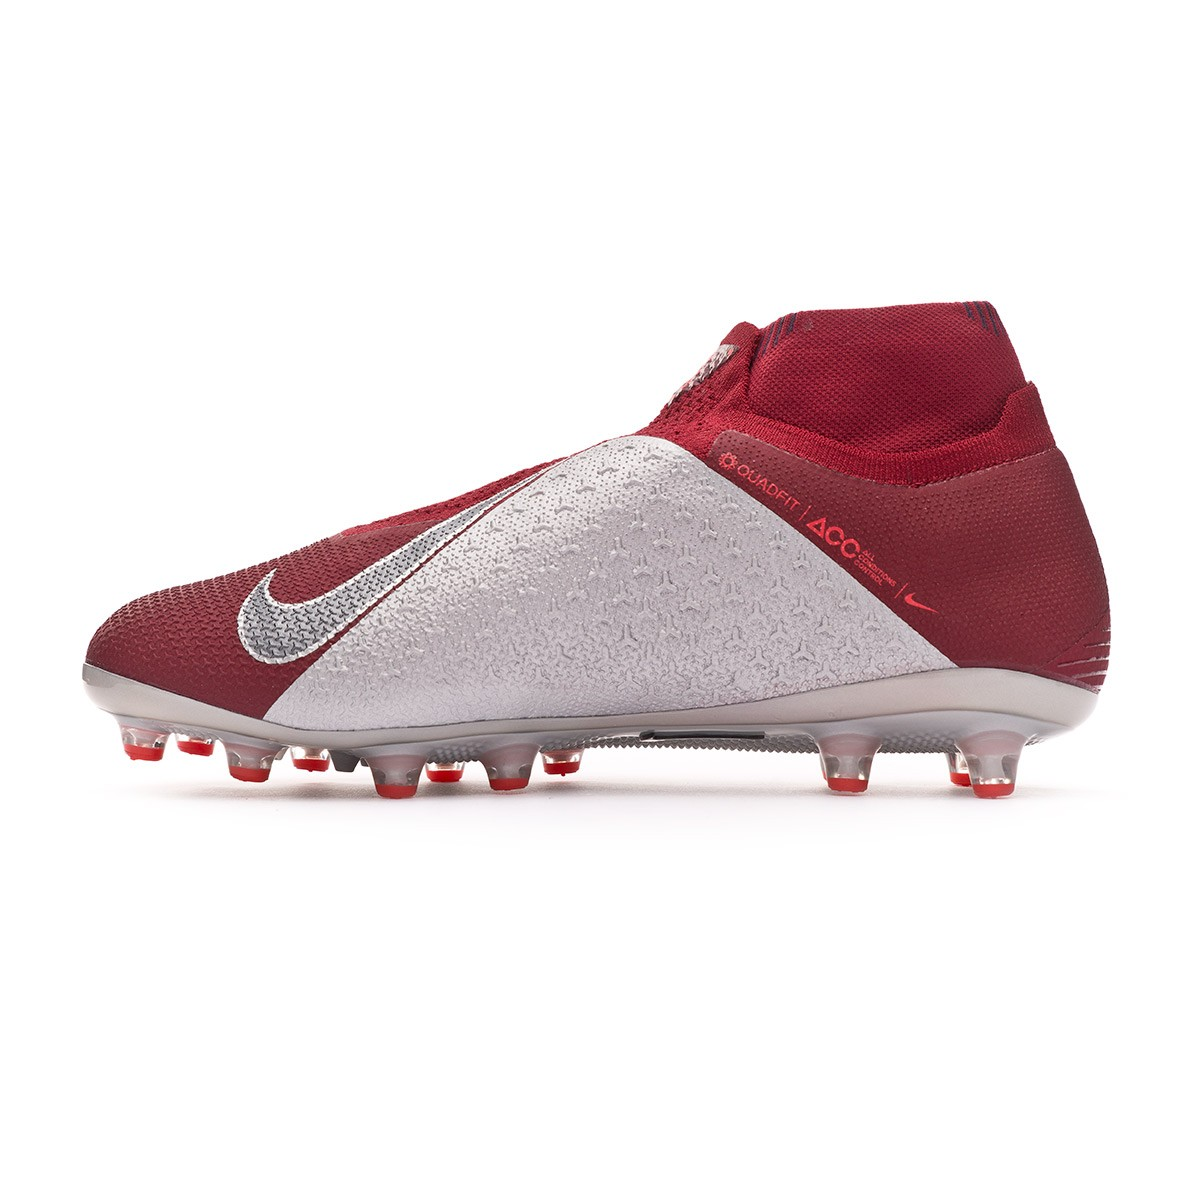 7f2d4f96c Football Boots Nike Phantom Vision Elite DF AG-Pro Team red-Metallic dark  grey-Bright crimson - Tienda de fútbol Fútbol Emotion